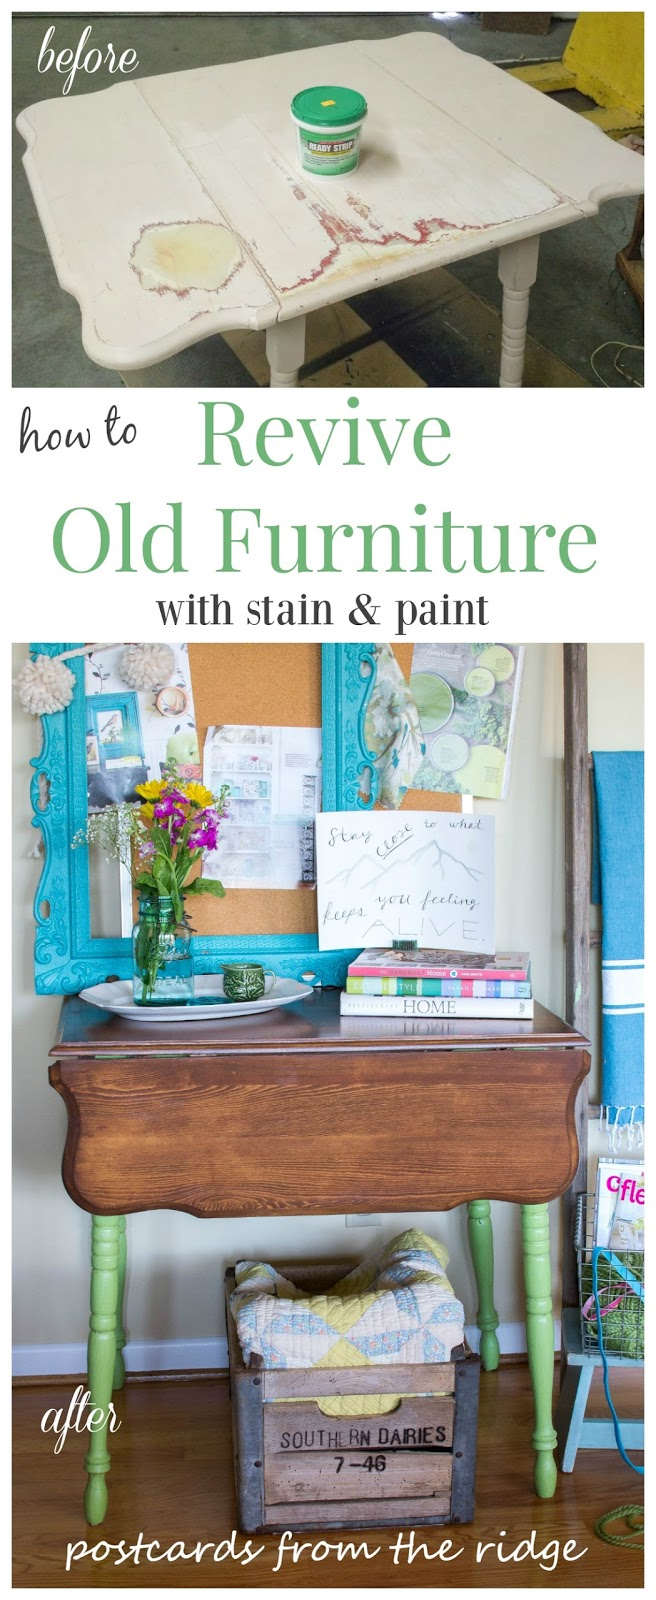 How To Revive Old Furniture With Paint And Stain